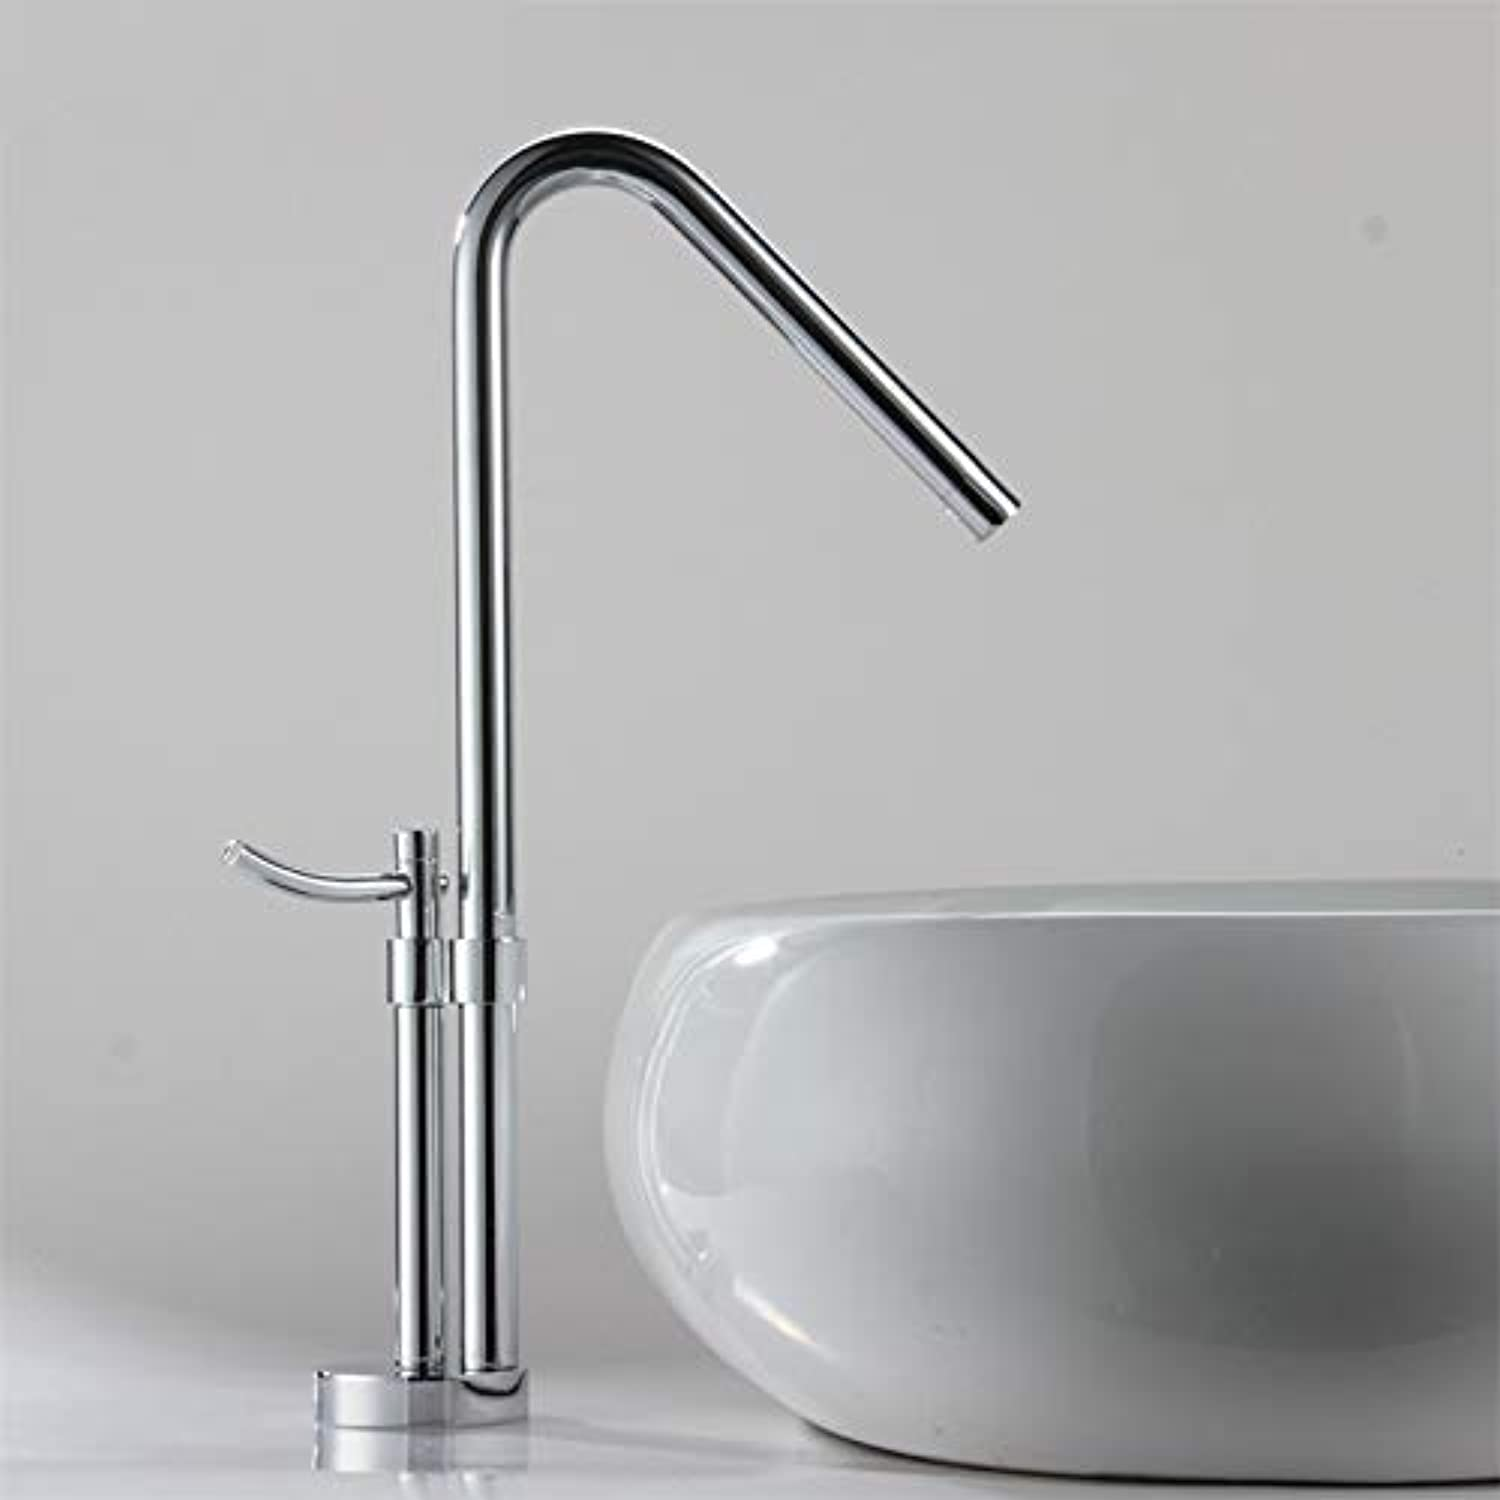 The Latest Modern Design Pure Copper Bathroom High Polished Sink Faucet